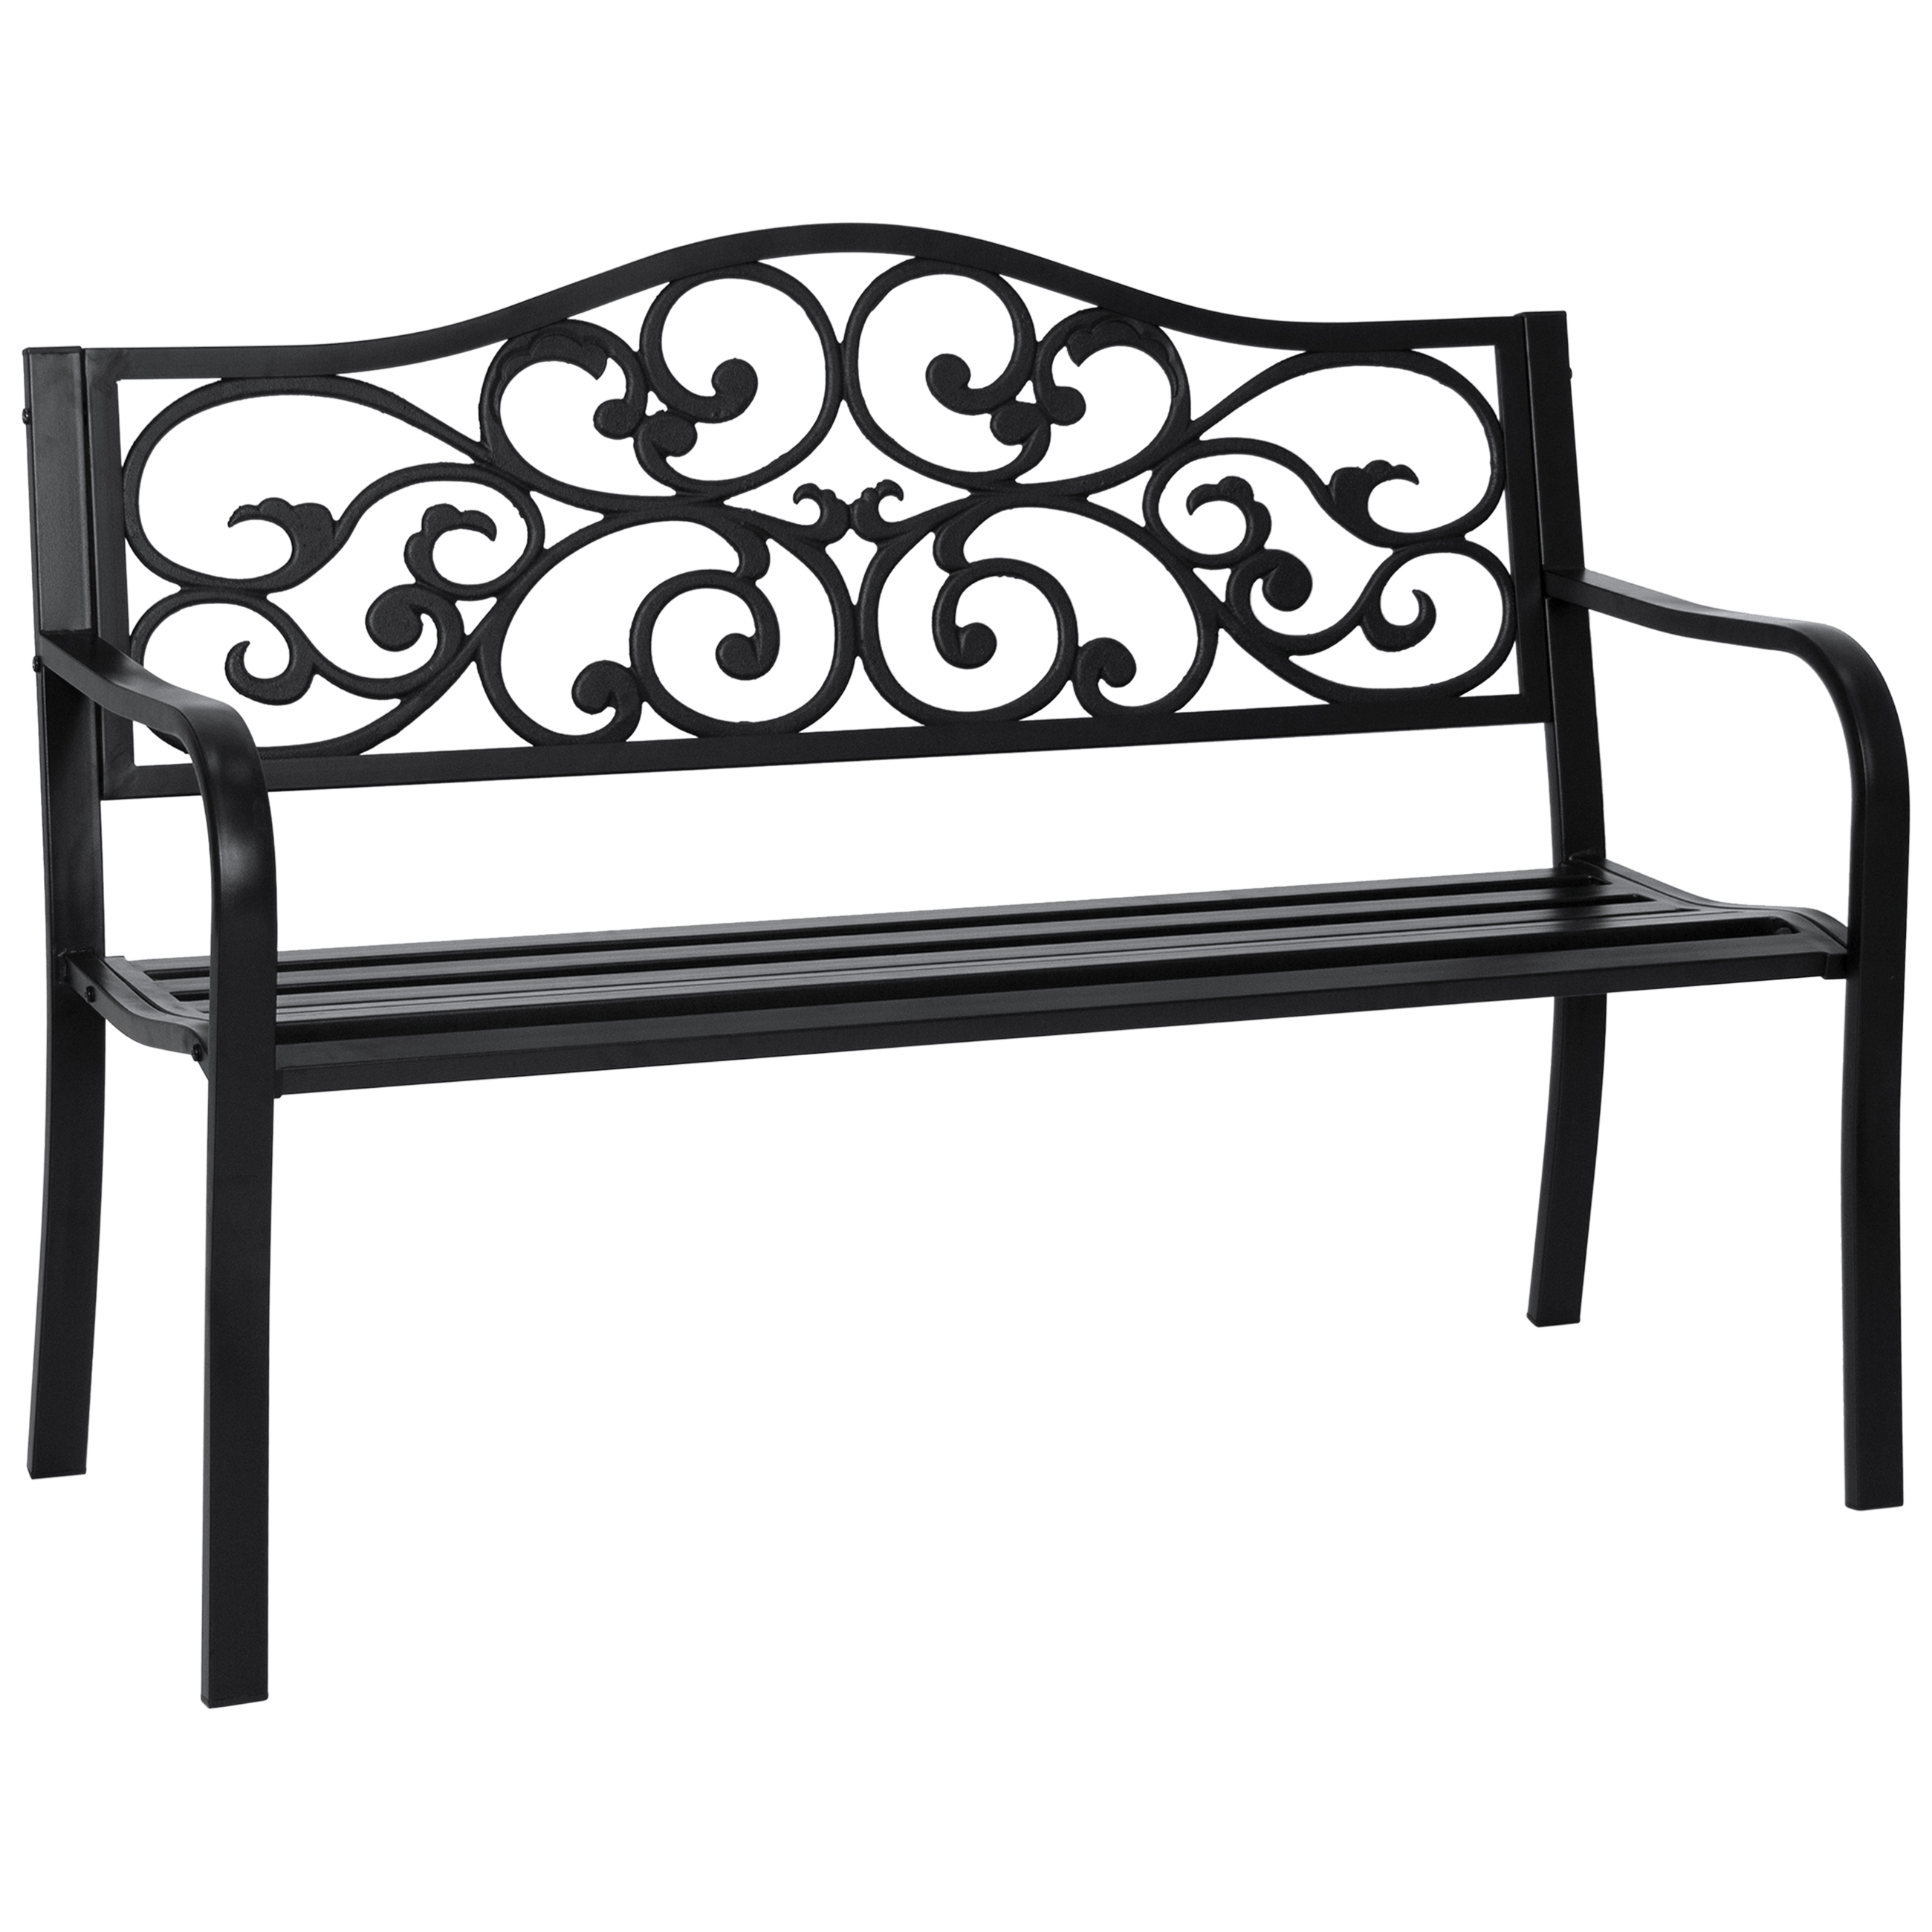 Best Choice Products Classic Metal Patio Garden Bench w  Decorative Floral Scroll Design... by Best Choice Products